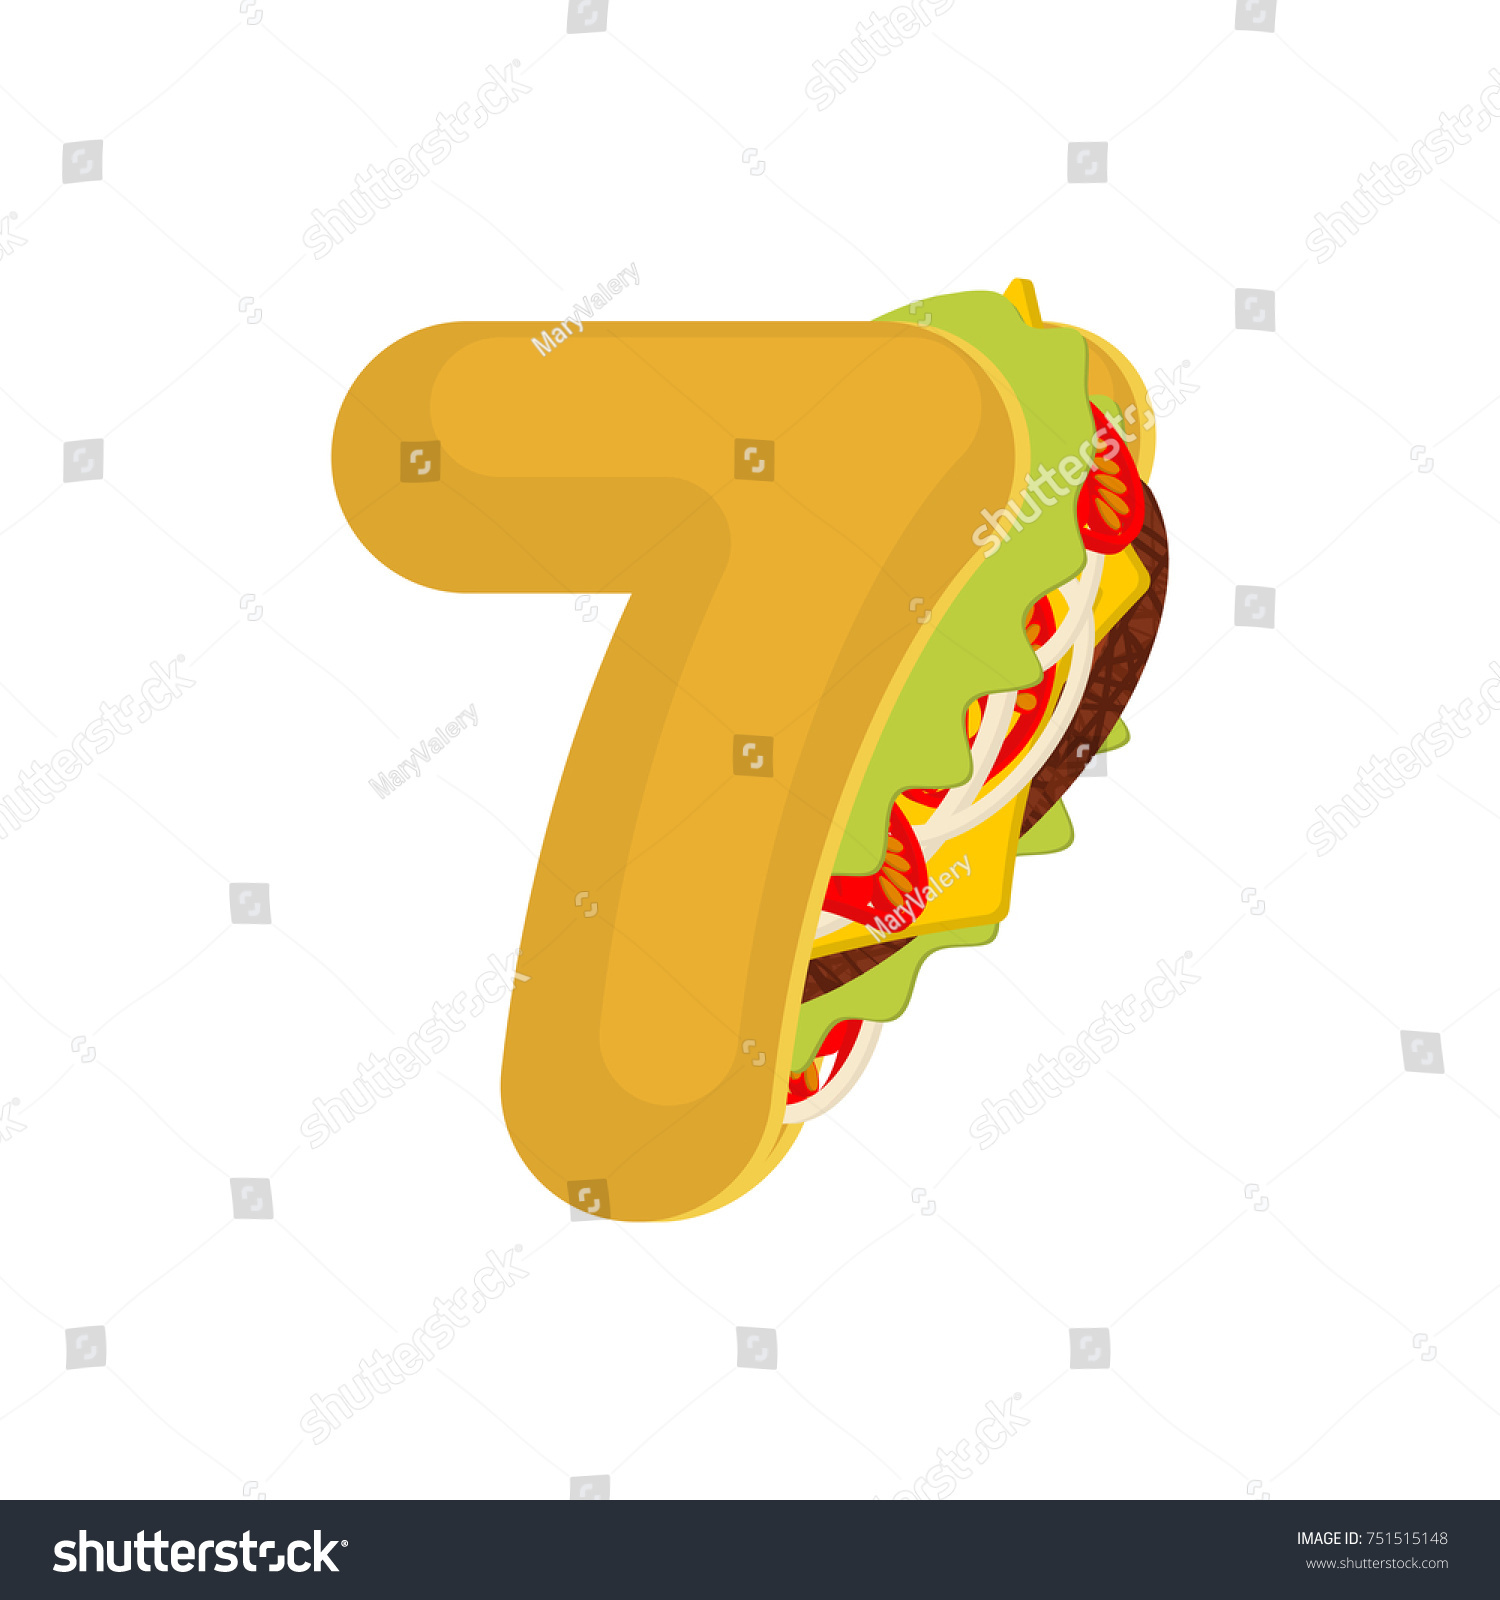 Number 7 Tacos Mexican Fast Food Stock Illustration Royalty Free